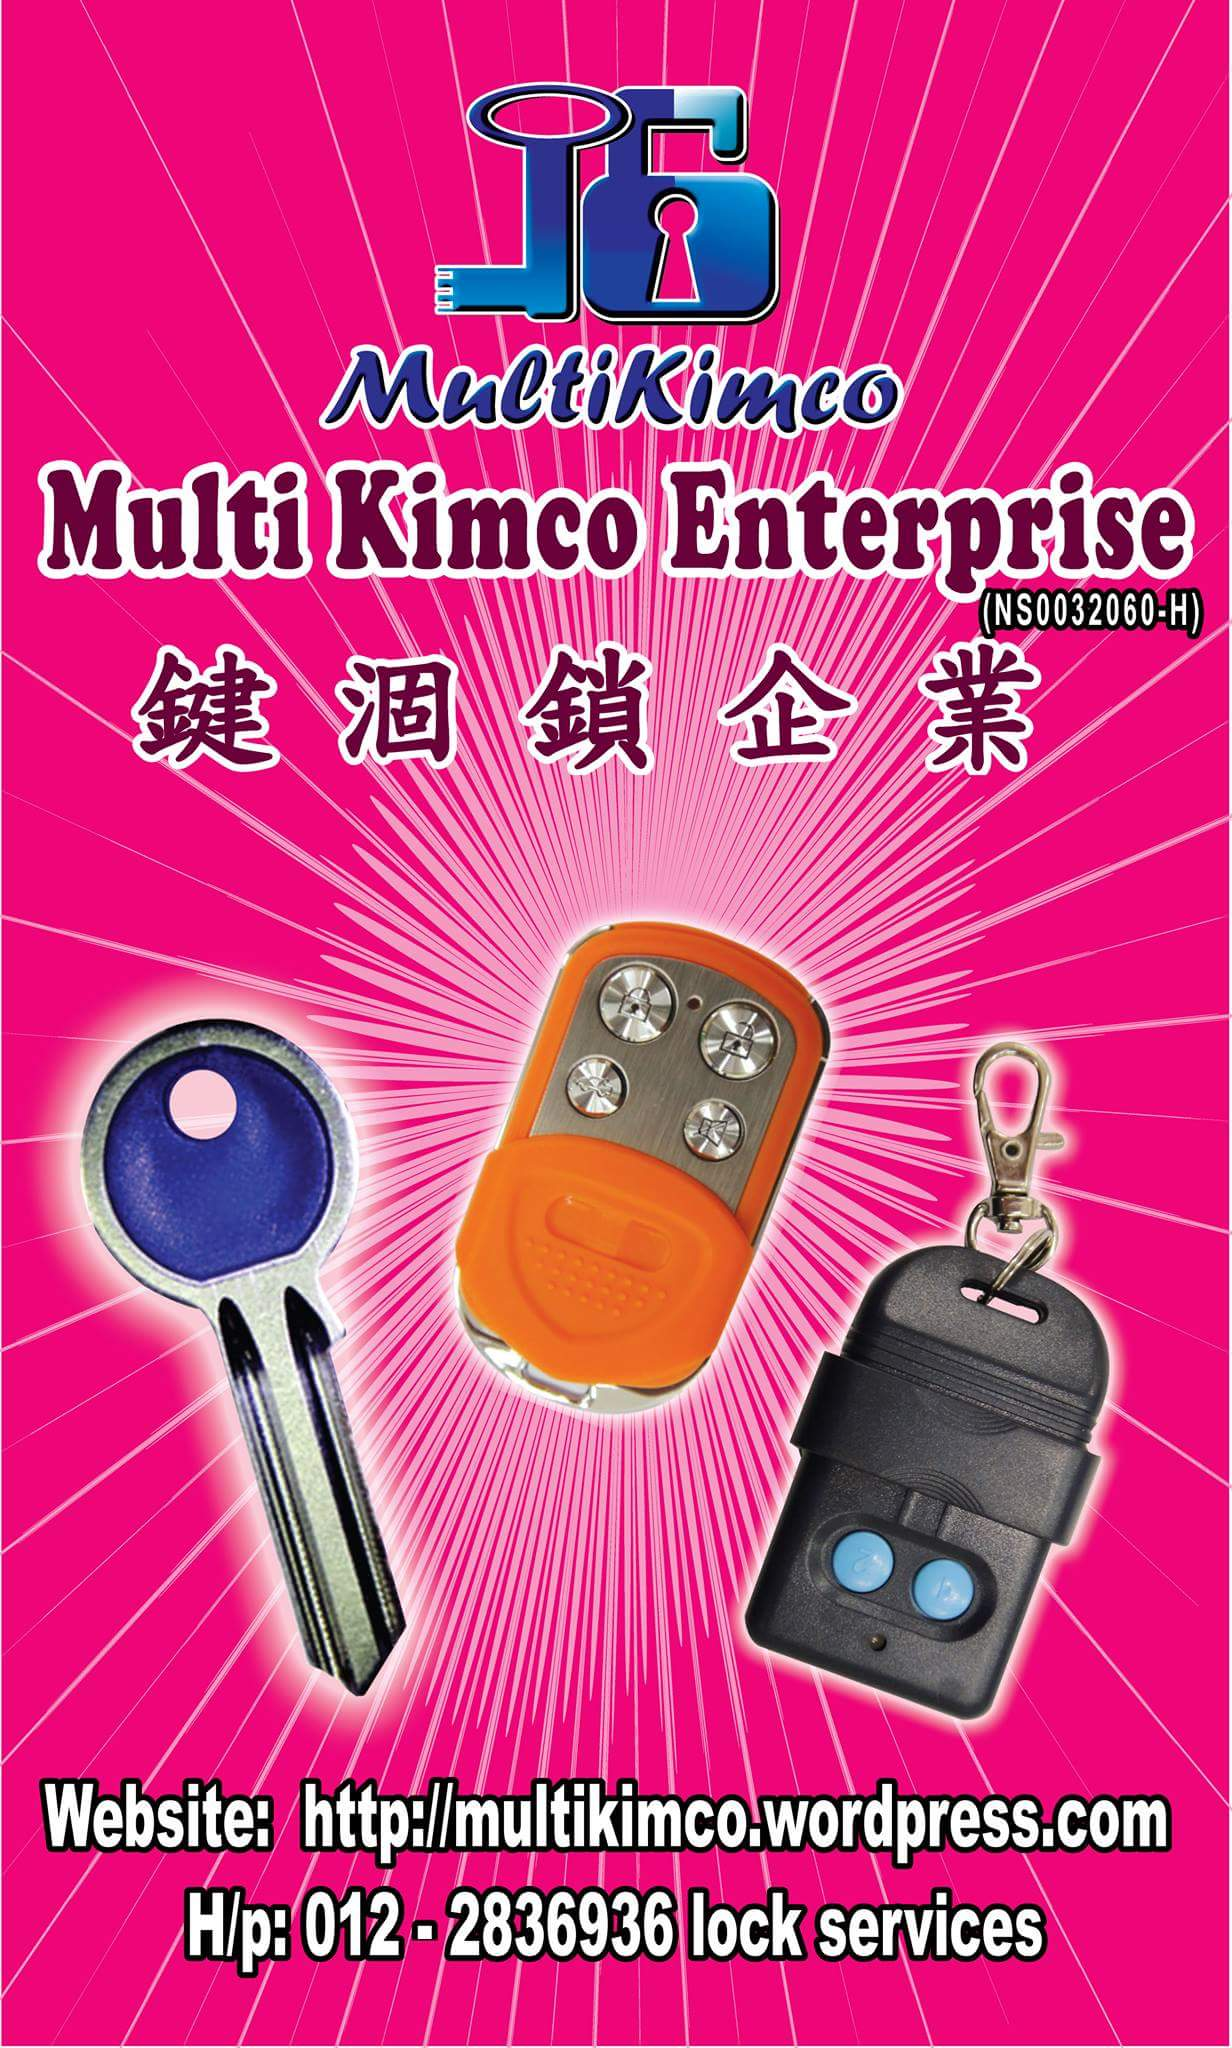 Multi Kimco Enterprise